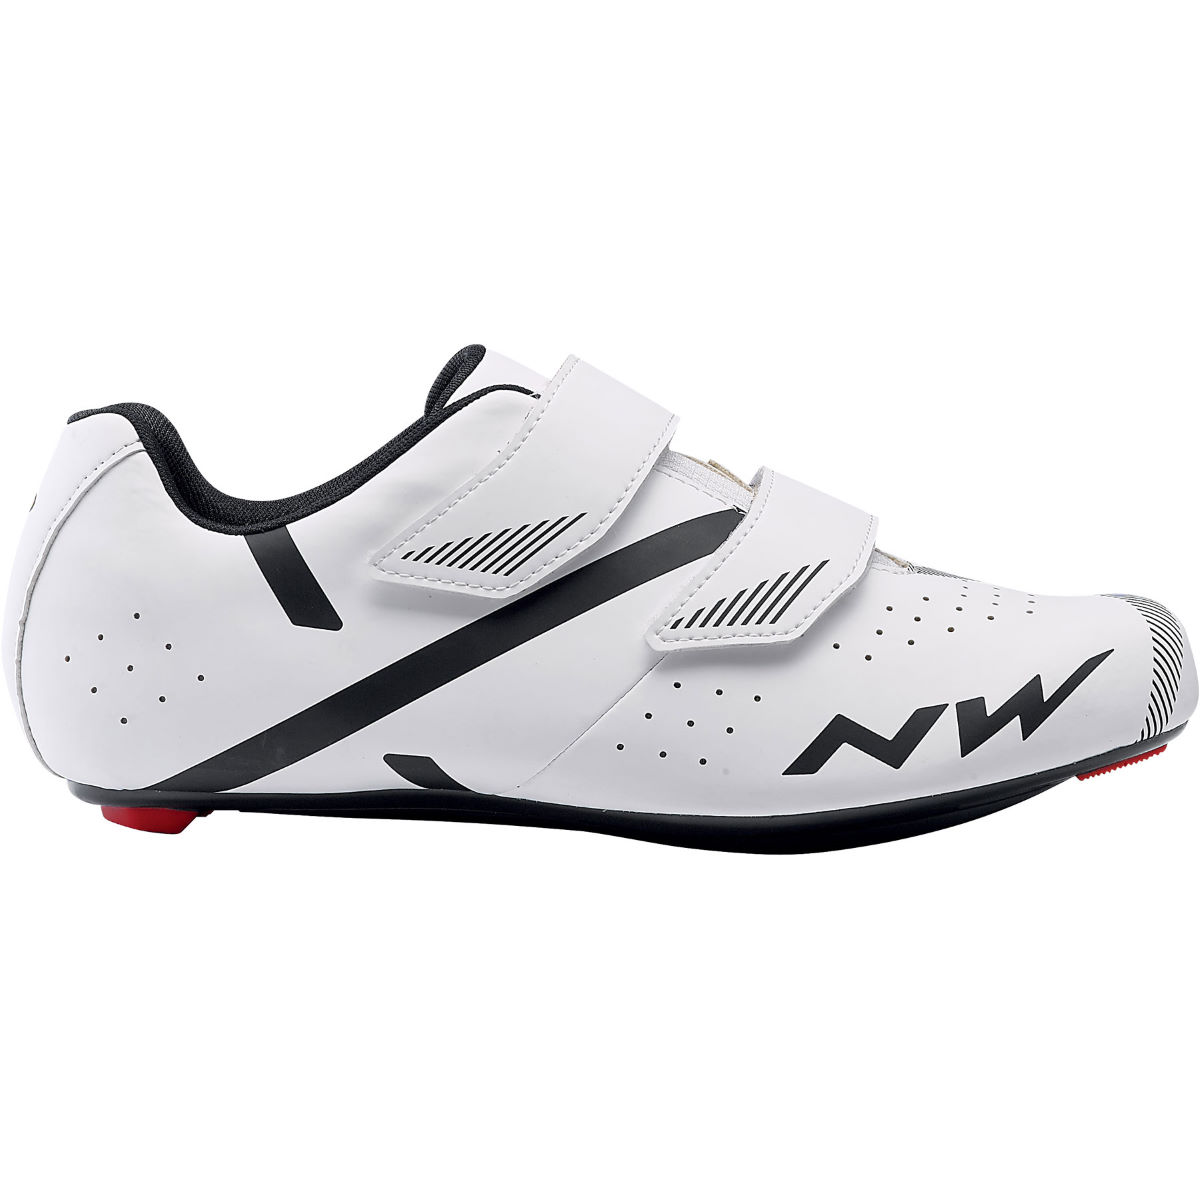 Northwave Northwave Jet 2 Road Shoes   Cycling Shoes